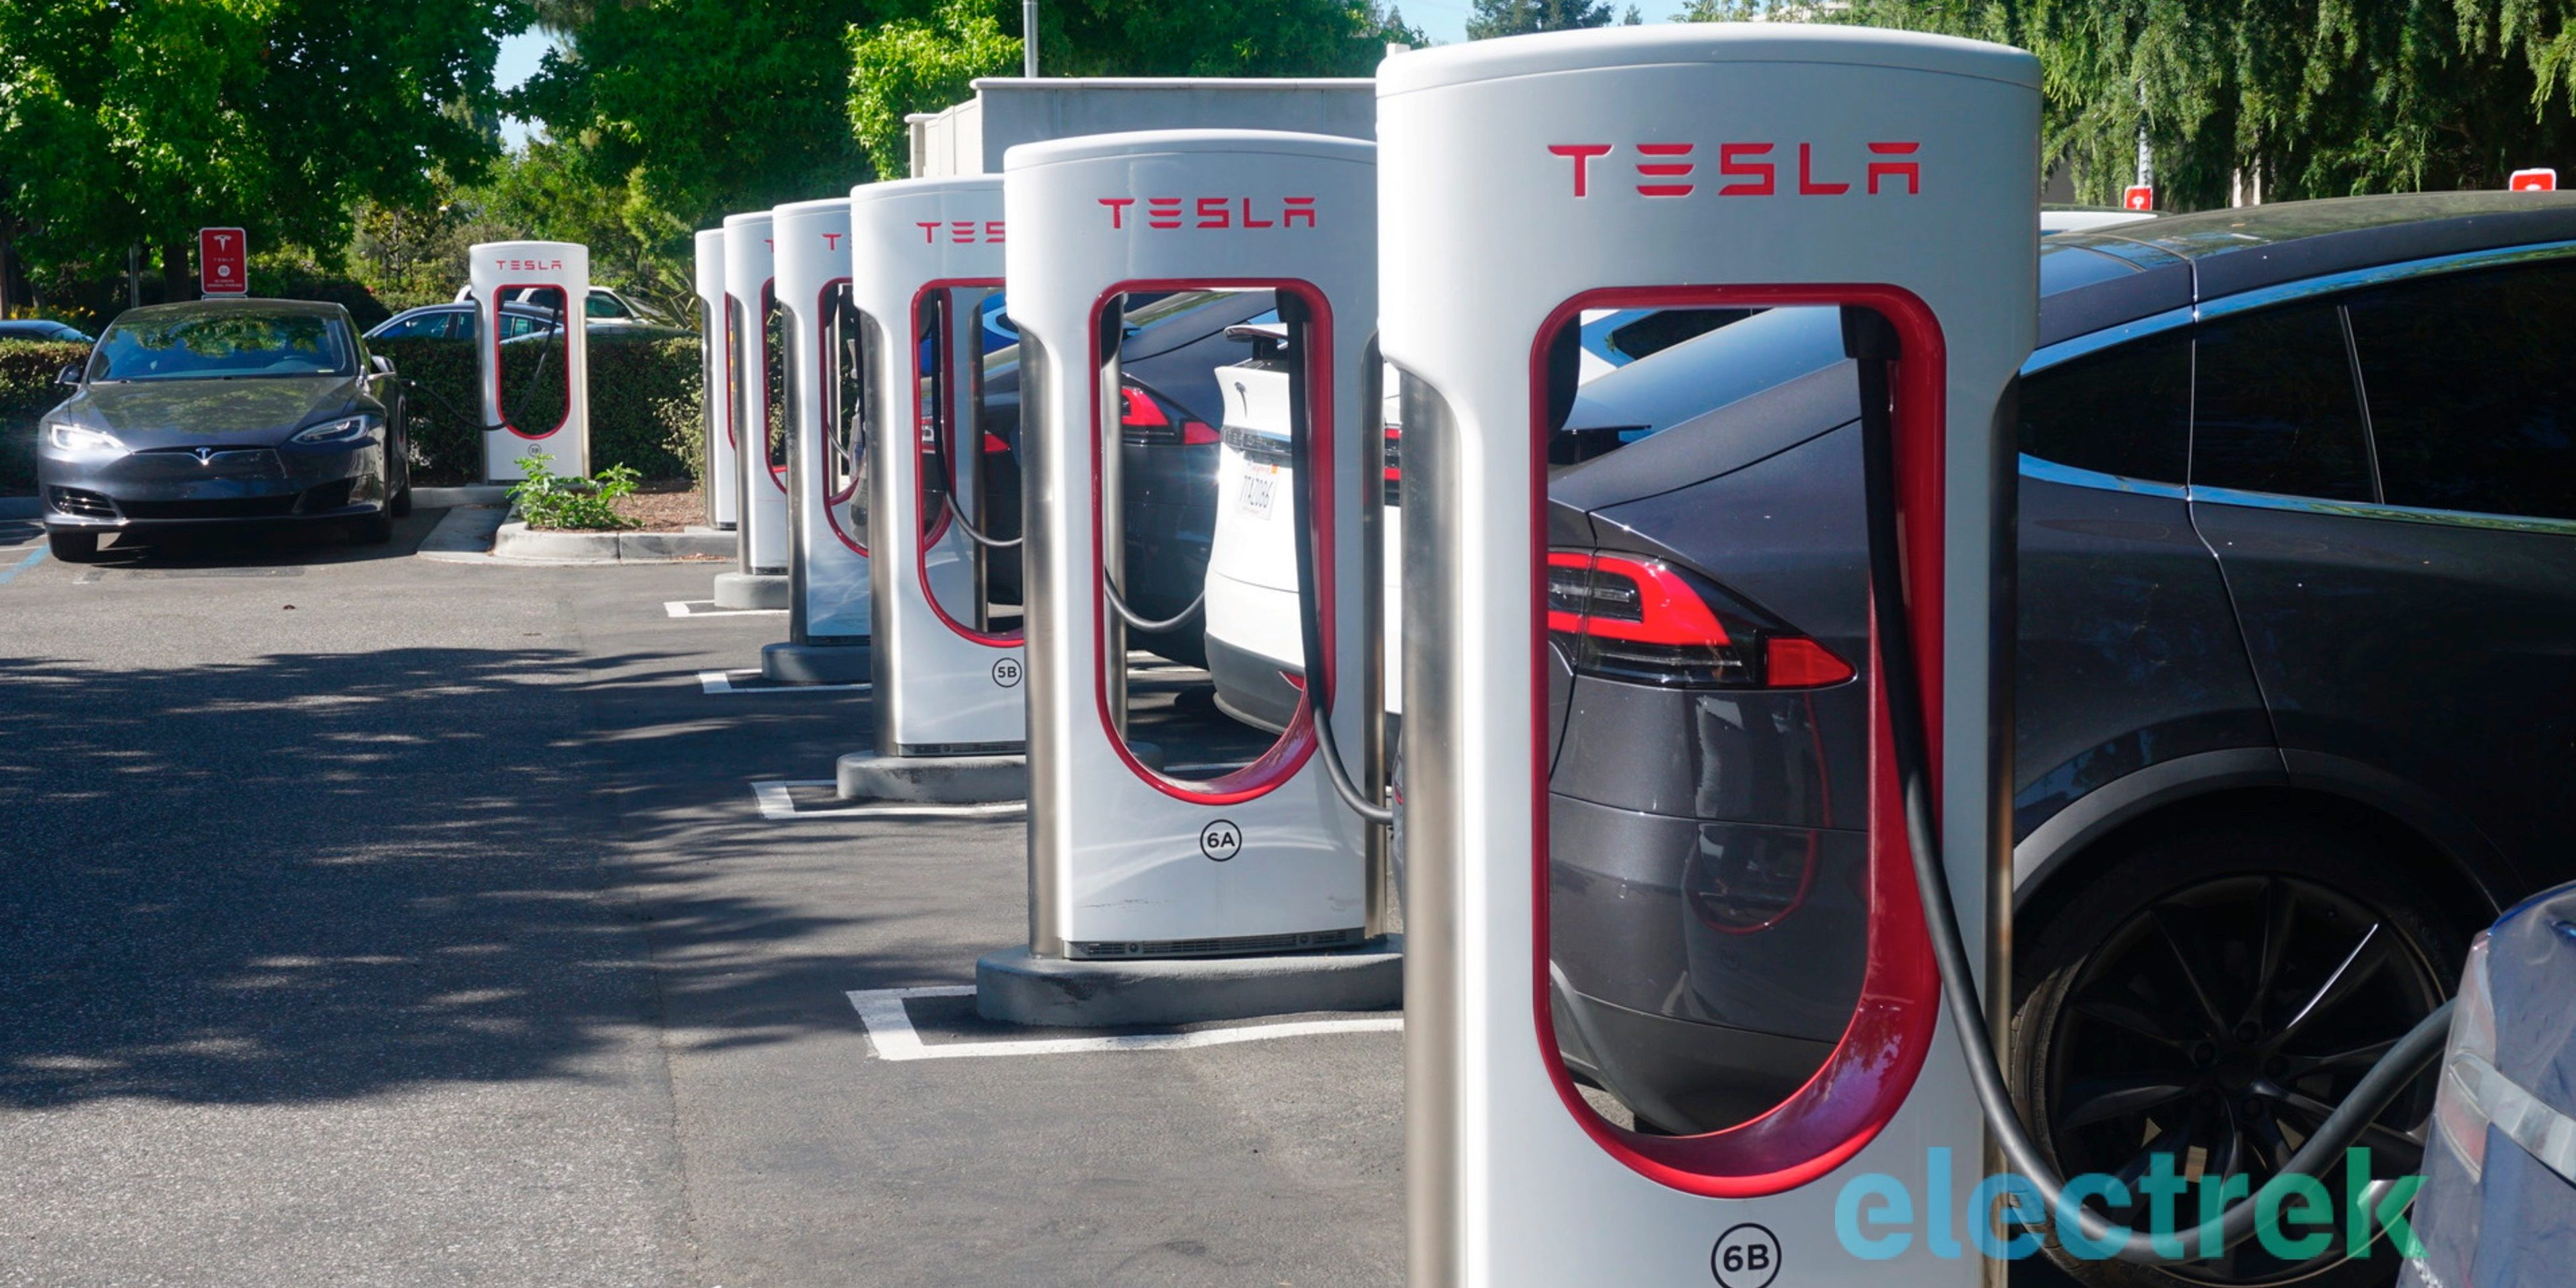 Tesla cuts Supercharger prices back down after customer backlash over increase | Electrek